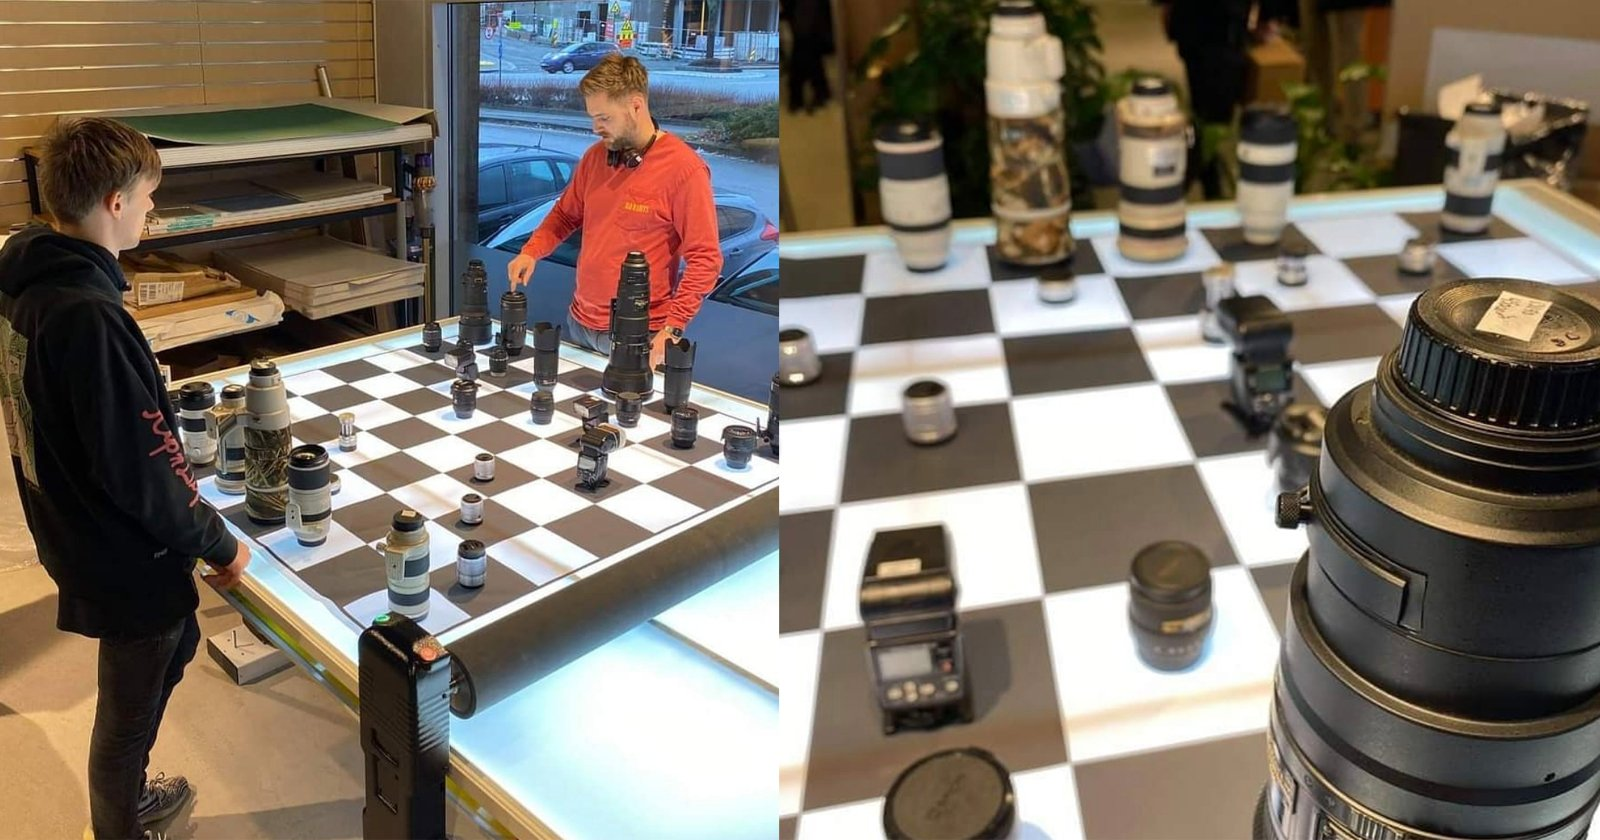 Play Chess with Camera Equipment at This Norwegian Camera Store